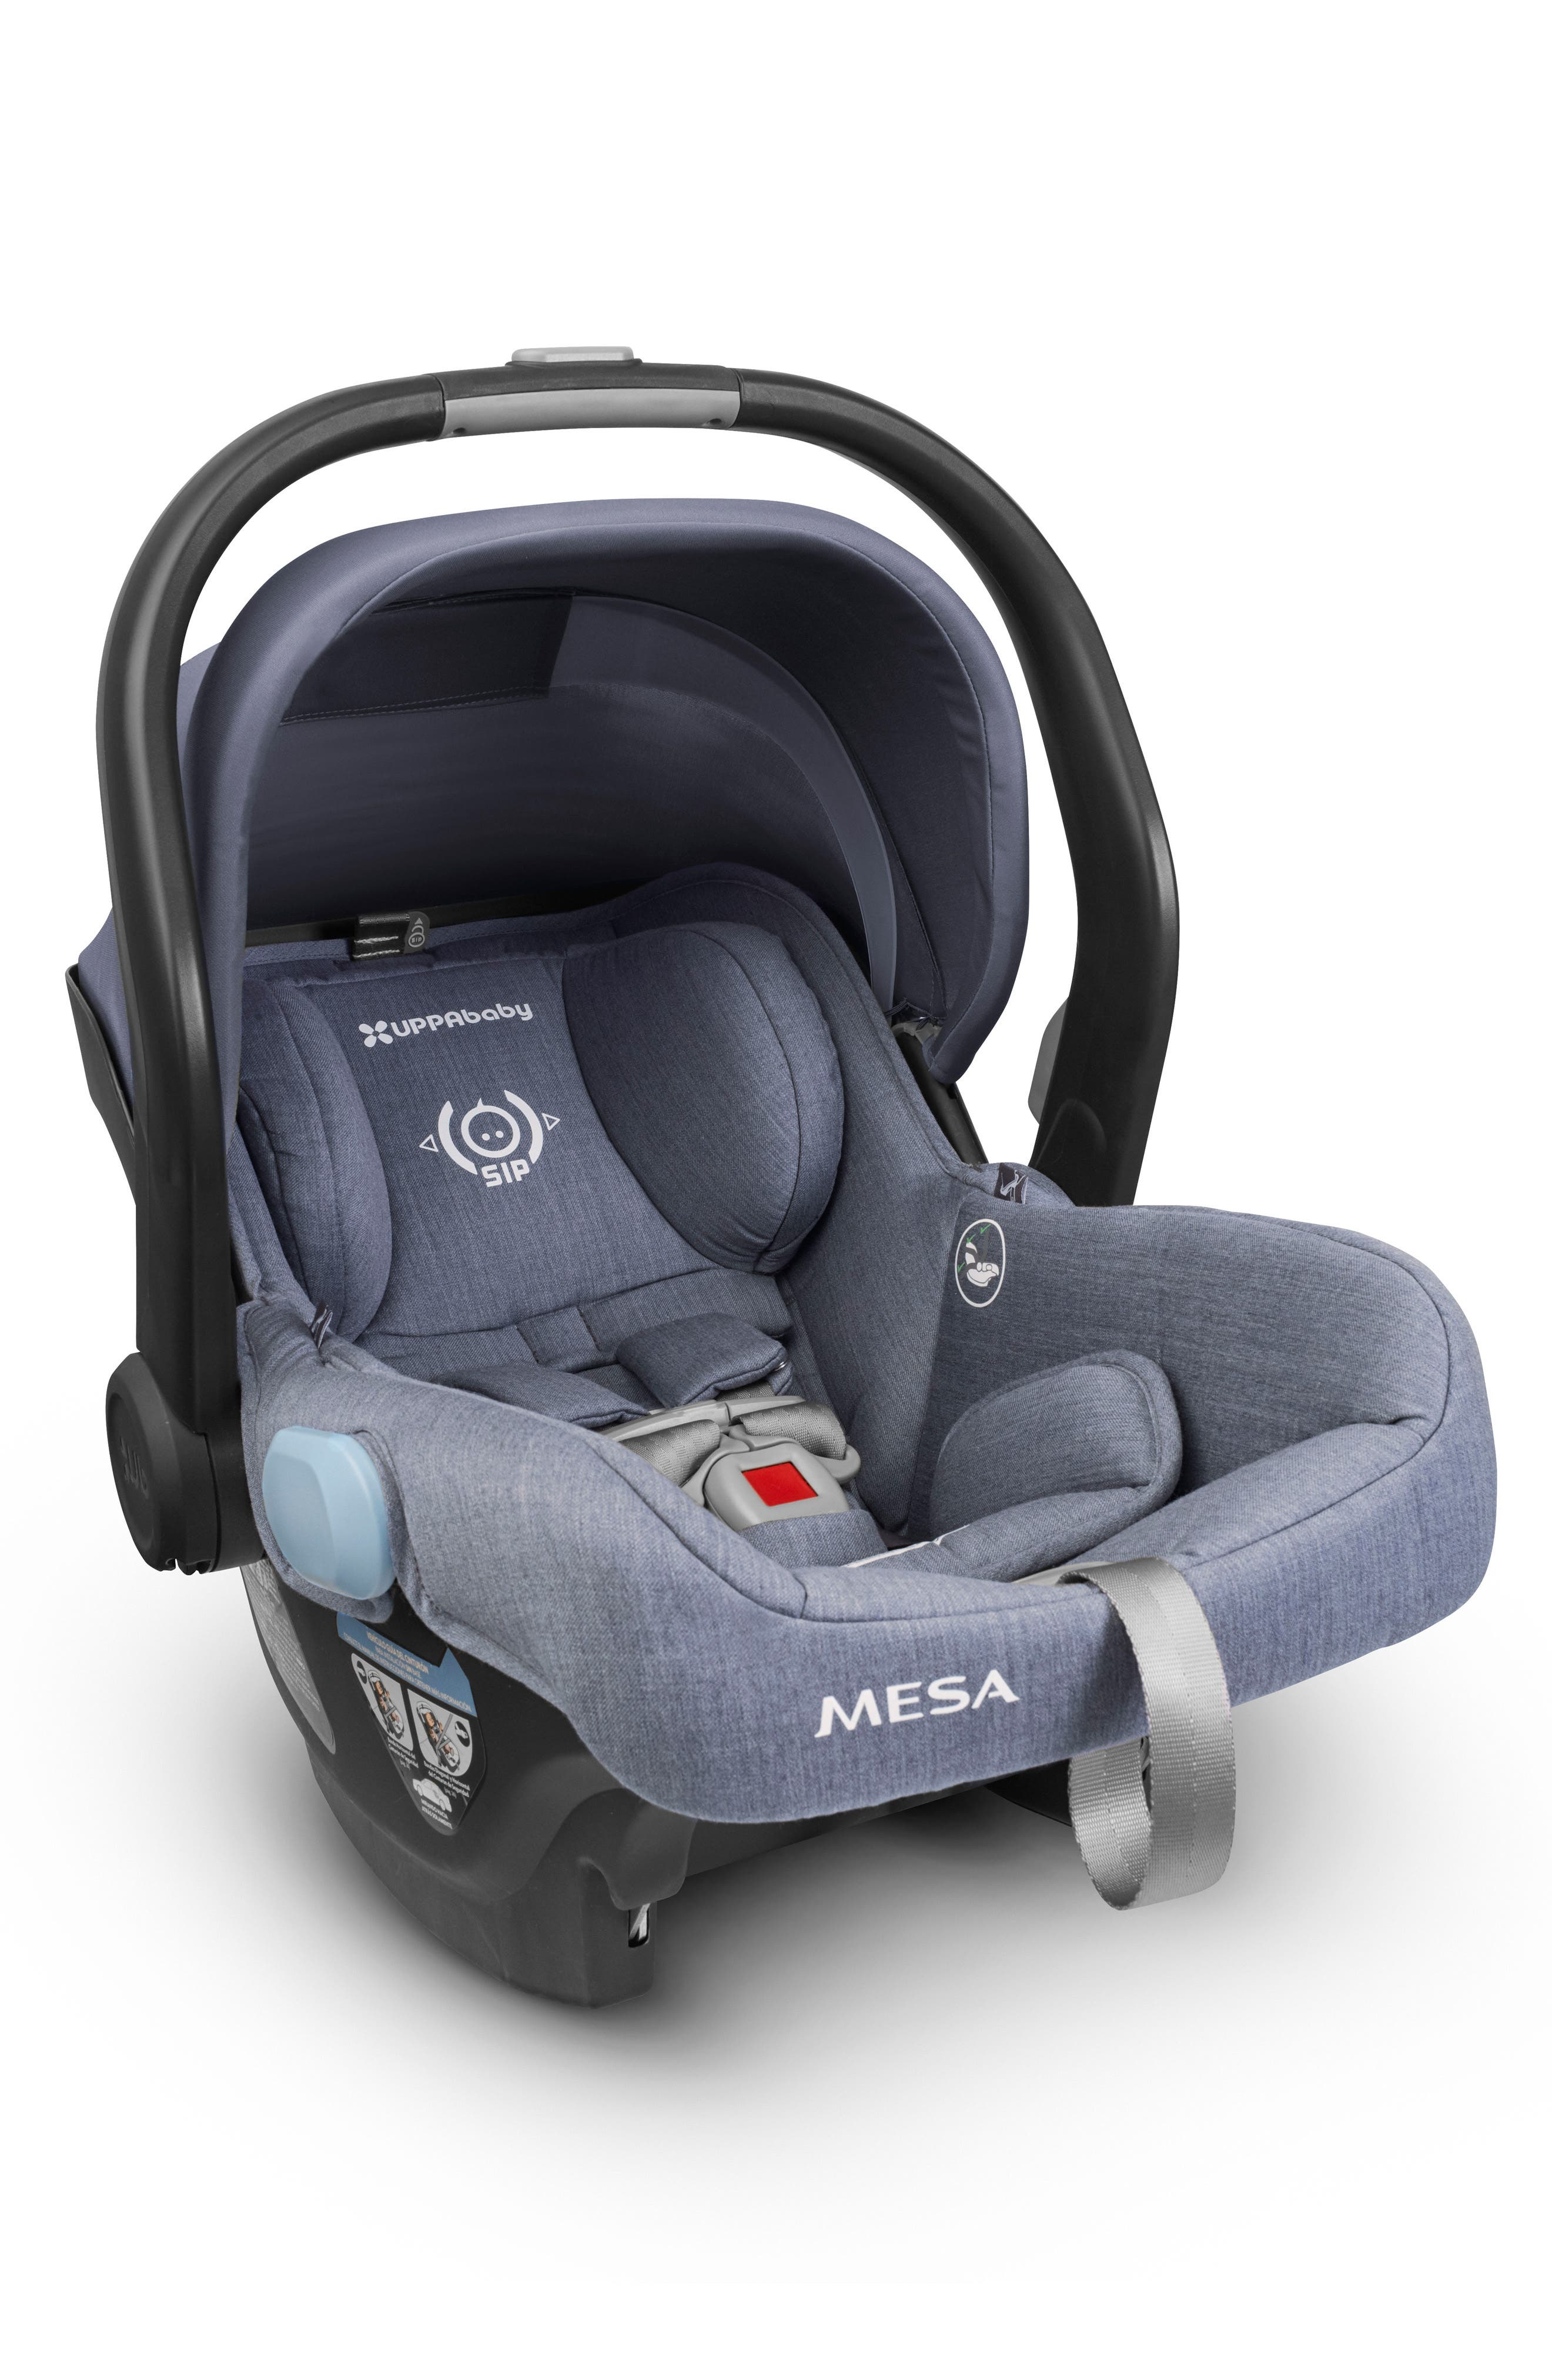 Main Image - UPPAbaby MESA - Henry Special Edition Car Seat